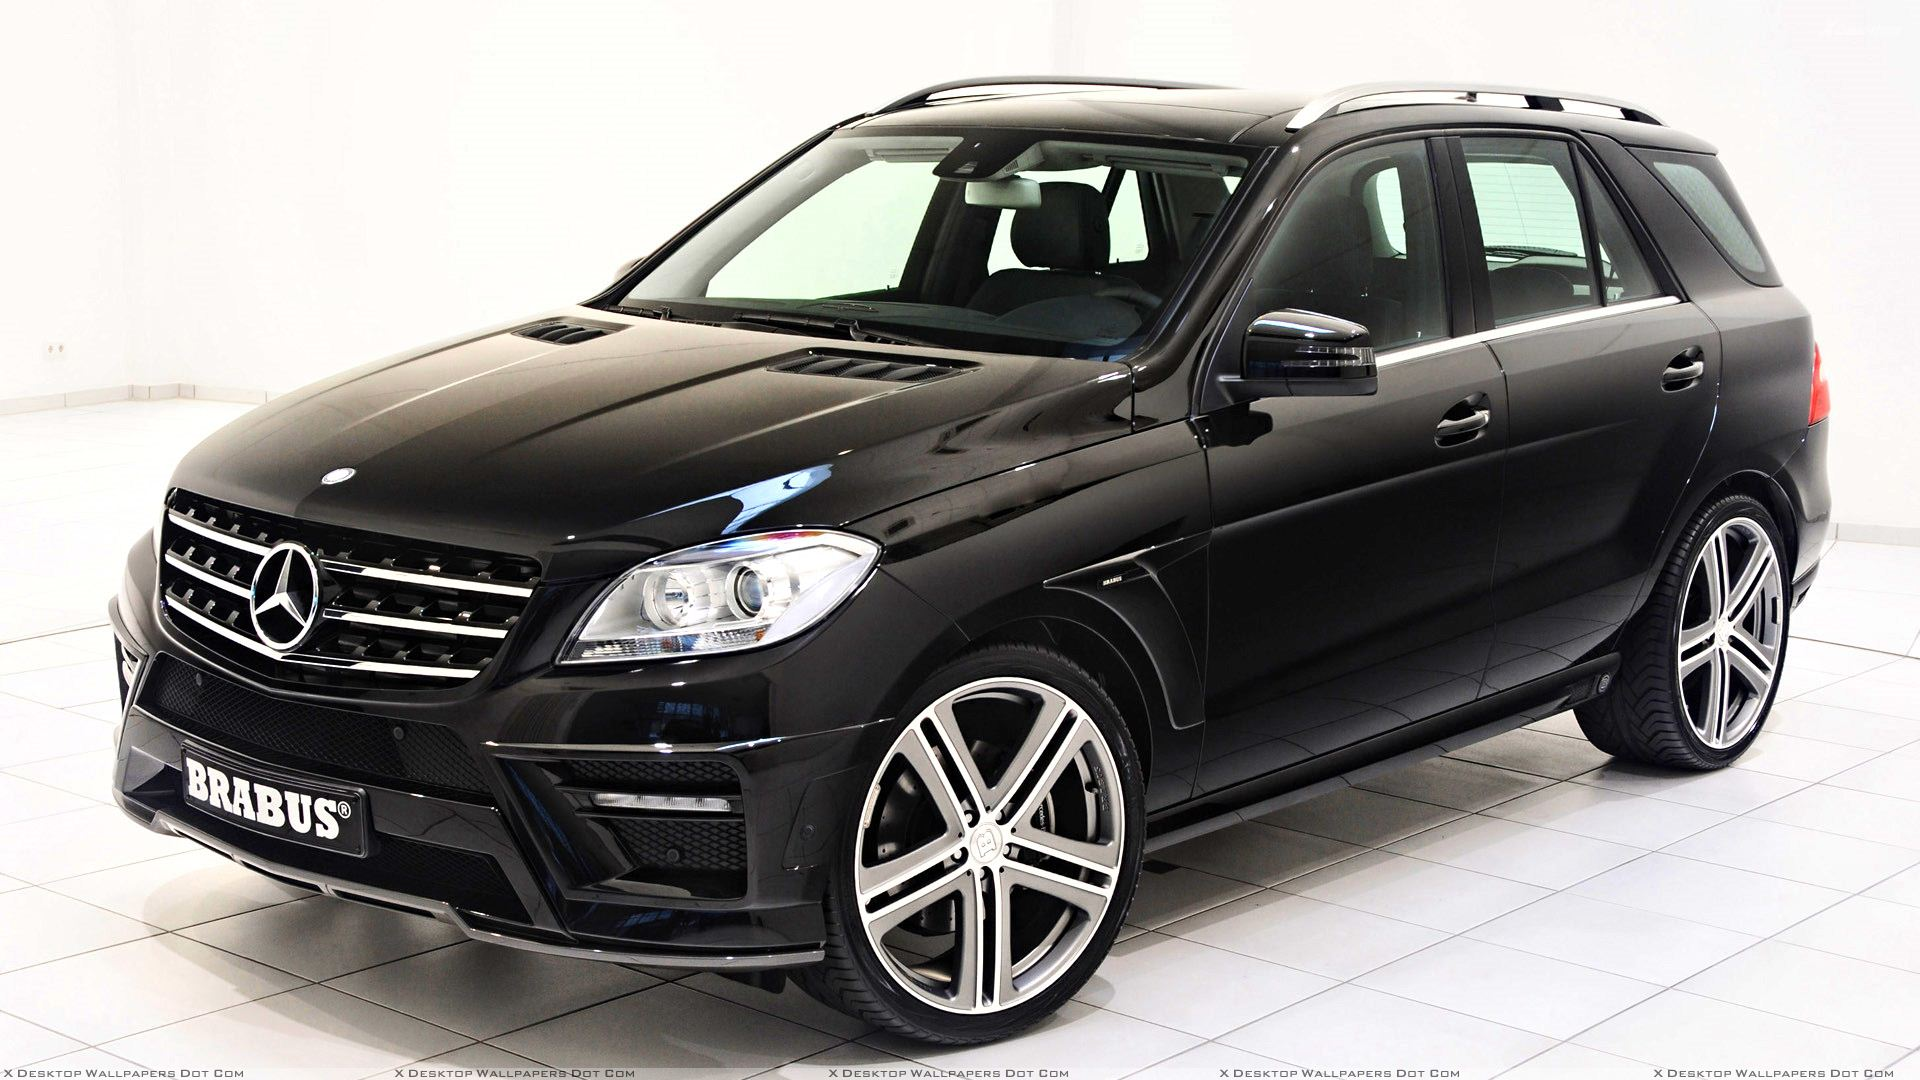 Brabus mercedes benz ml w166 in black front side pose for Mercedes benz be